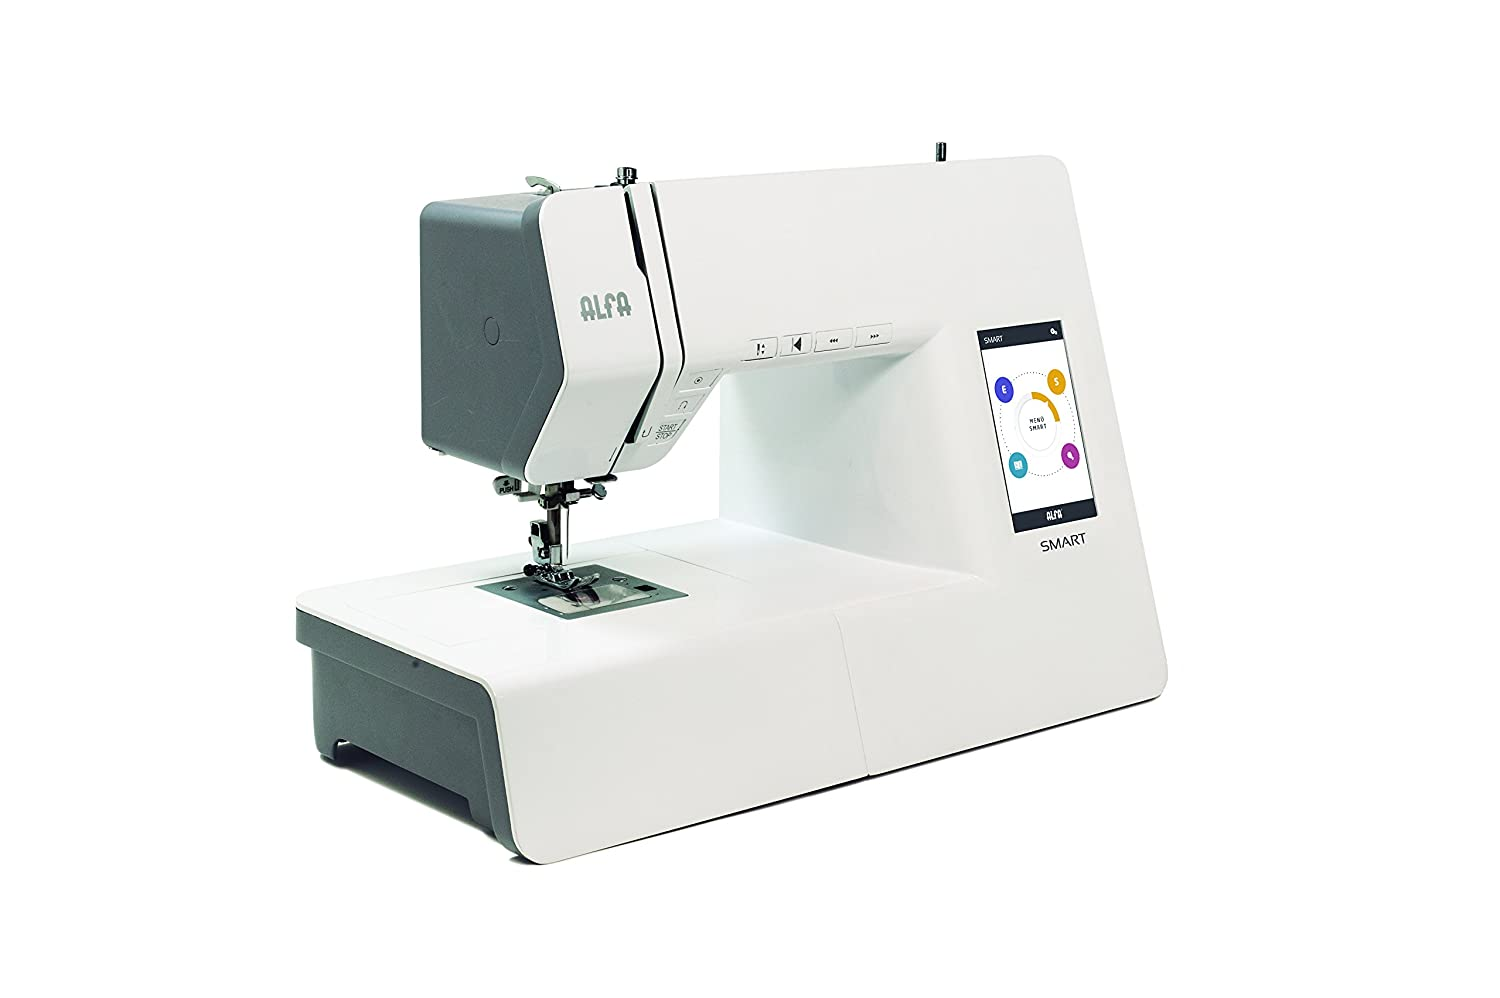 Alfa Smart Electric Sewing Machine Instructions May Not Be In